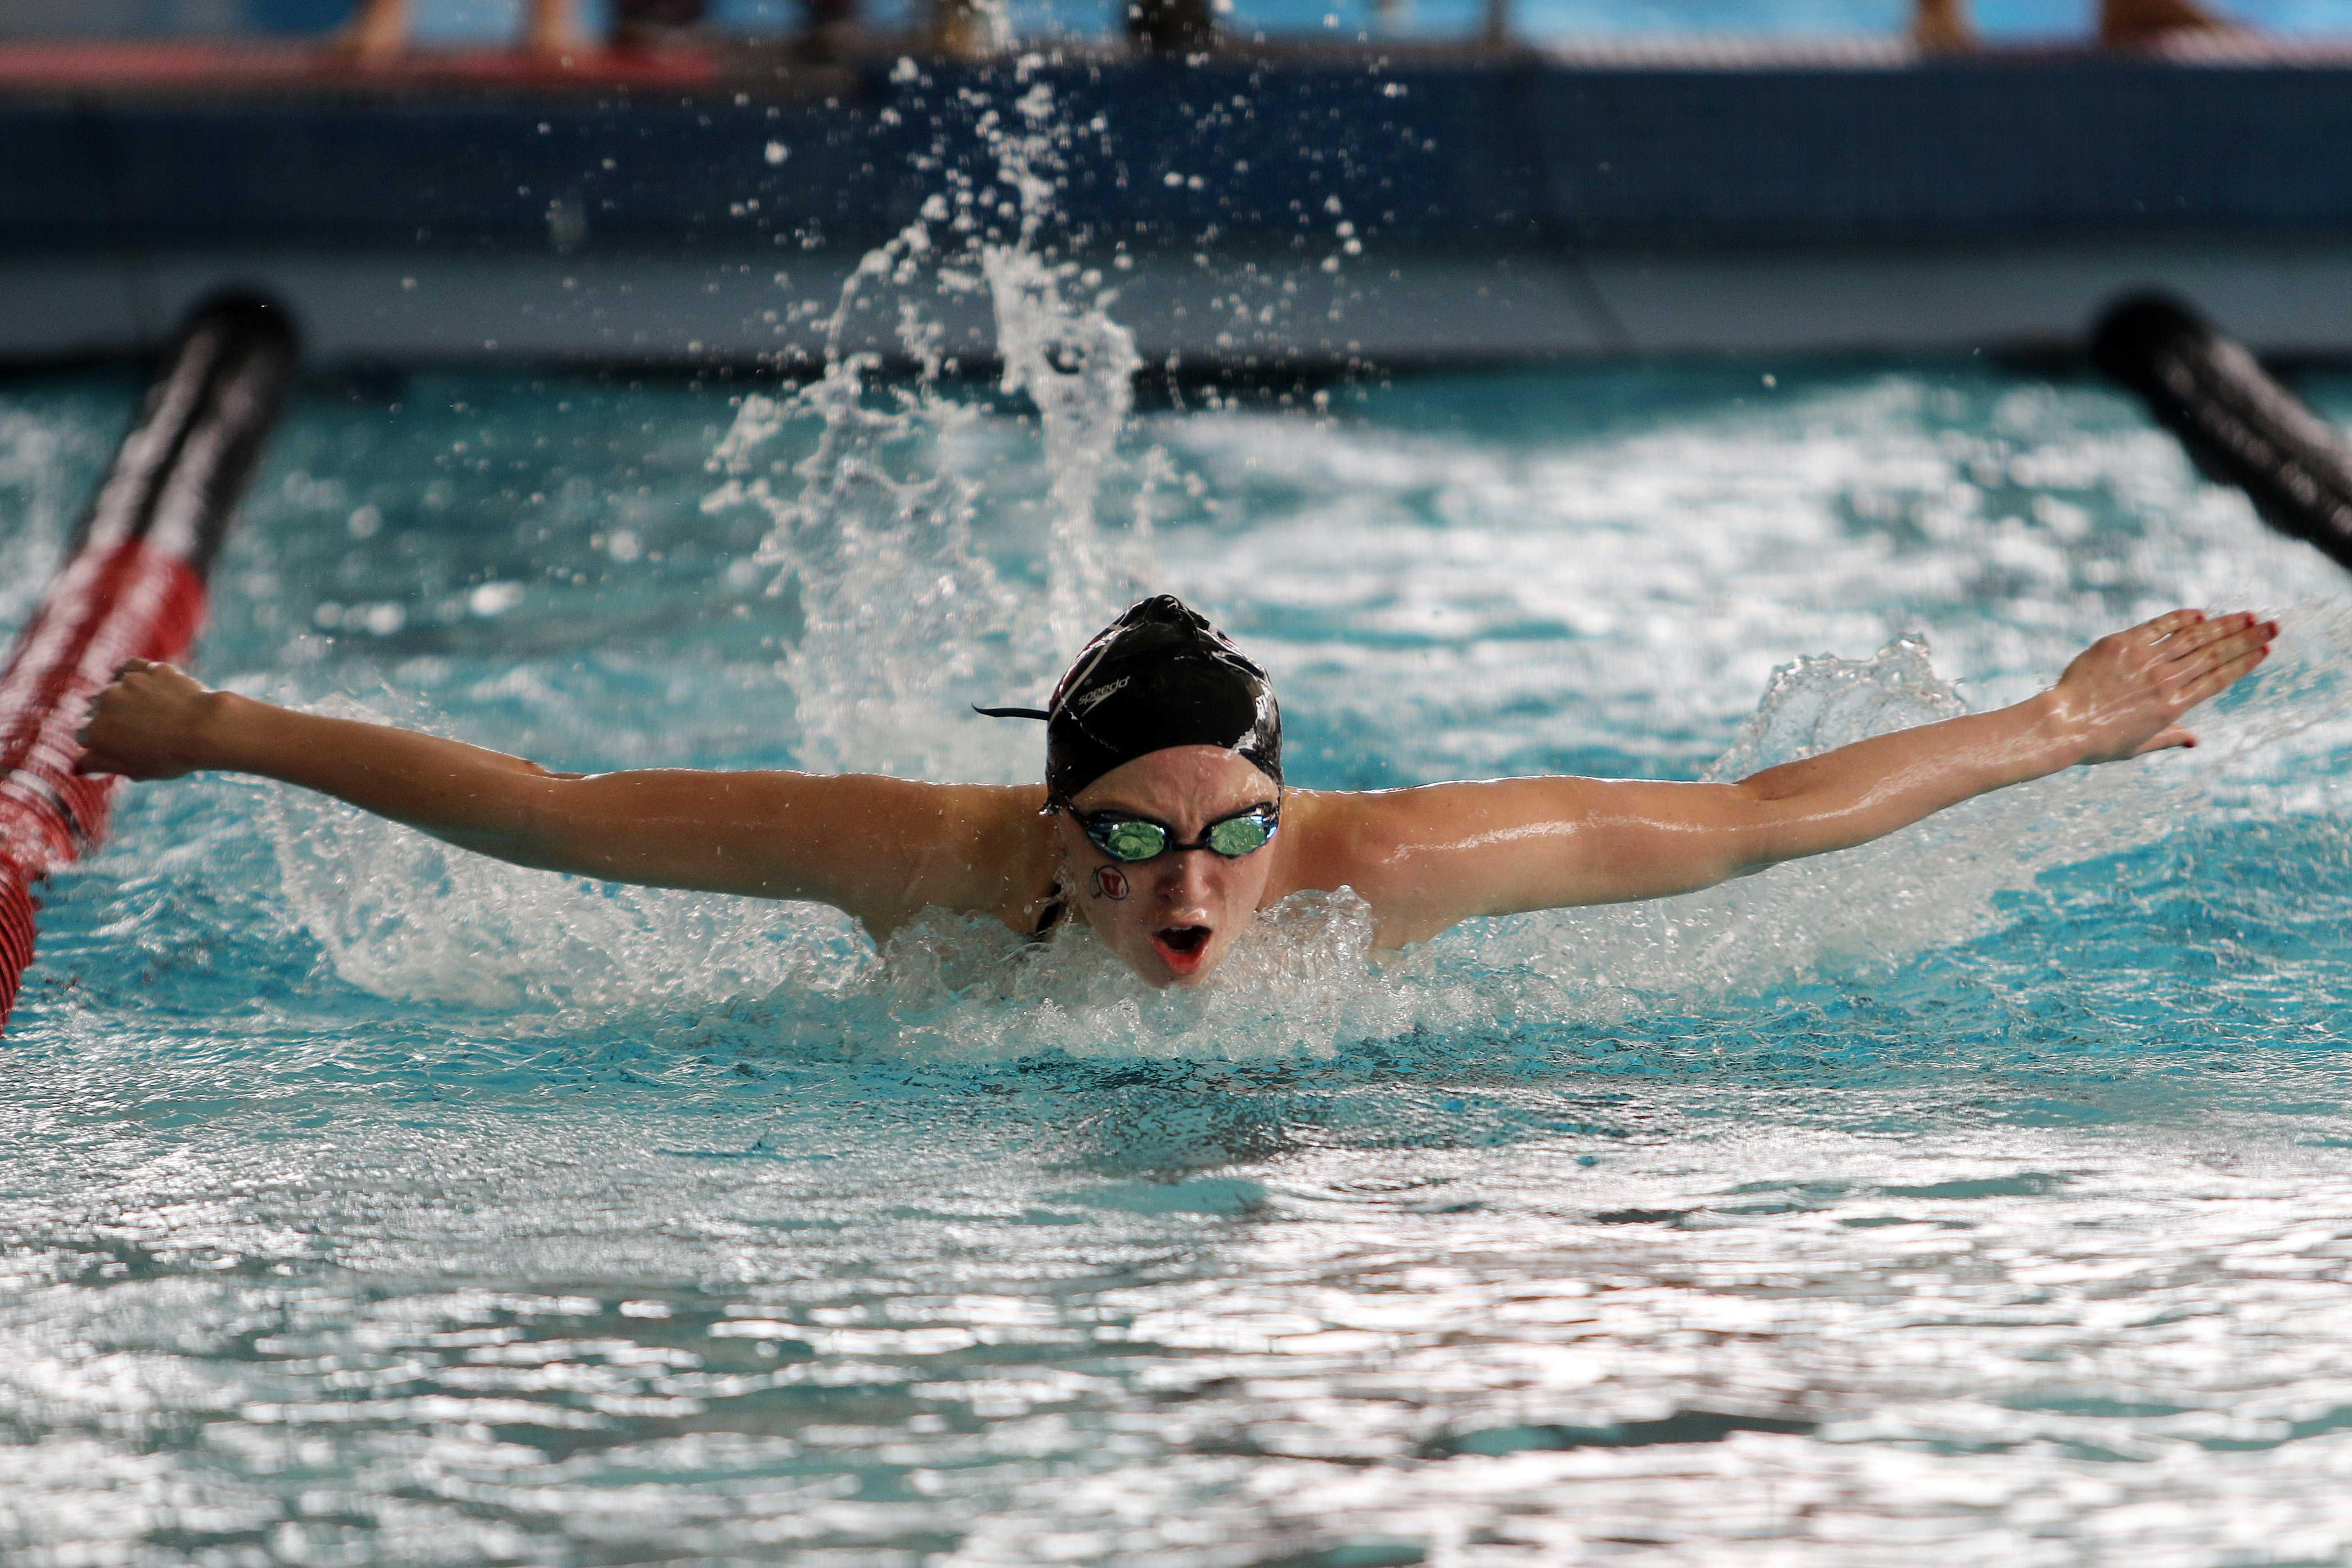 Freshman Jordan Anderson competes in the 200 butterfly during a Pac-12 women's swimming meet against the Washington State Cougars at the Ute Natatorium, Saturday, Feb., 13, 2016. (Chris Samuels, Daily Utah Chronicle)